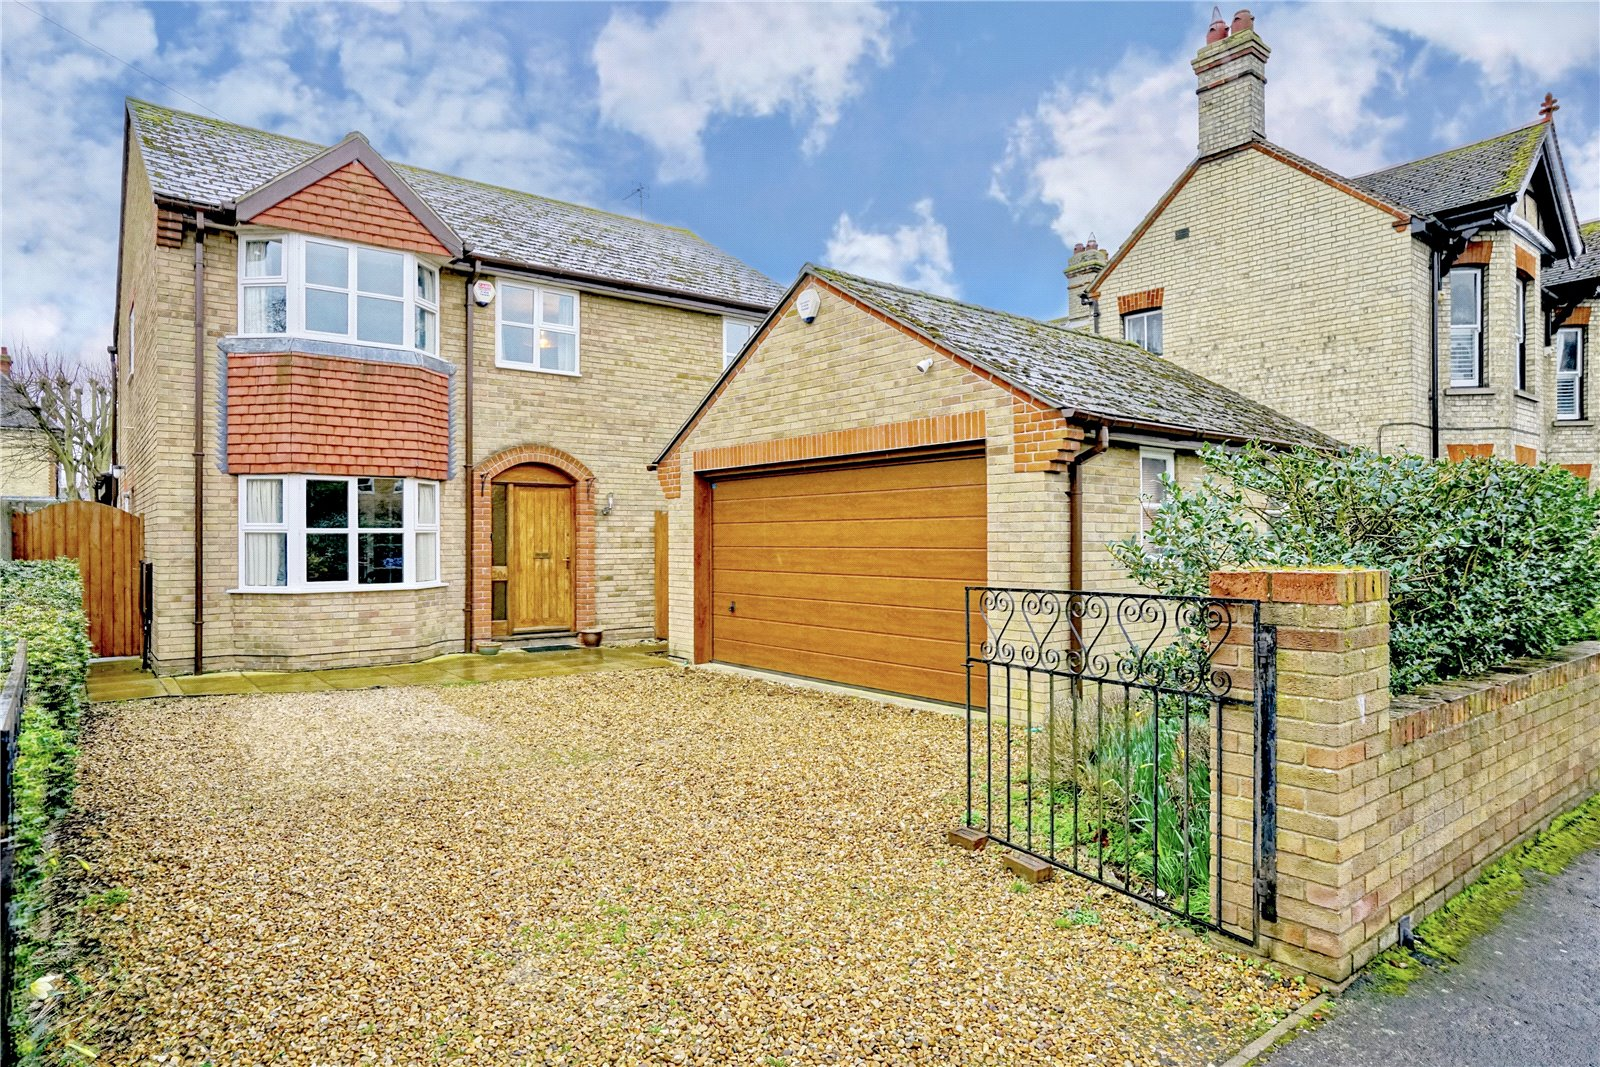 4 bed house for sale in St. Neots, PE19